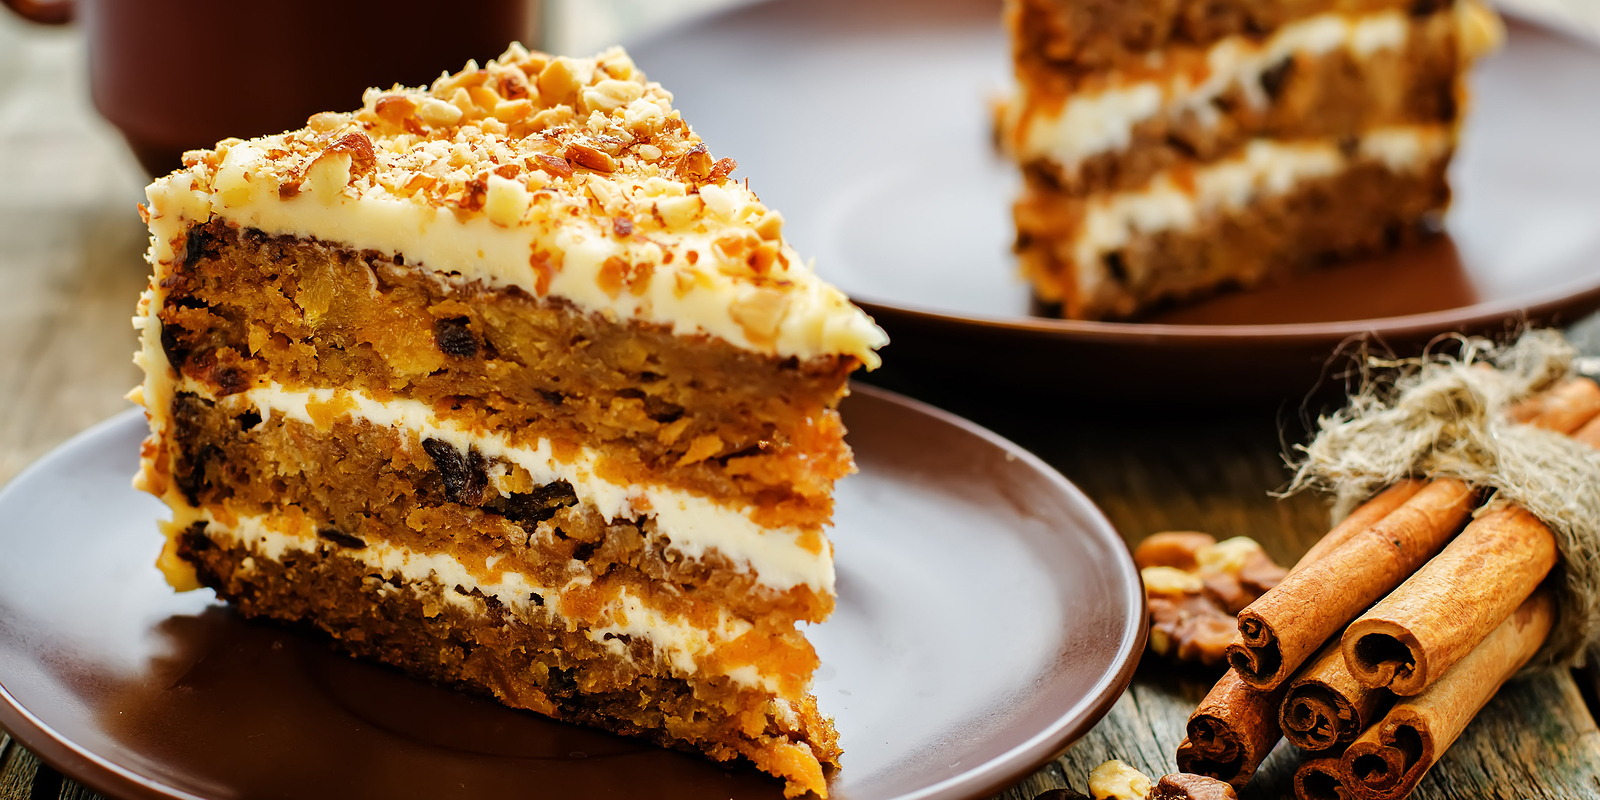 Cake with nuts and raisins recipe